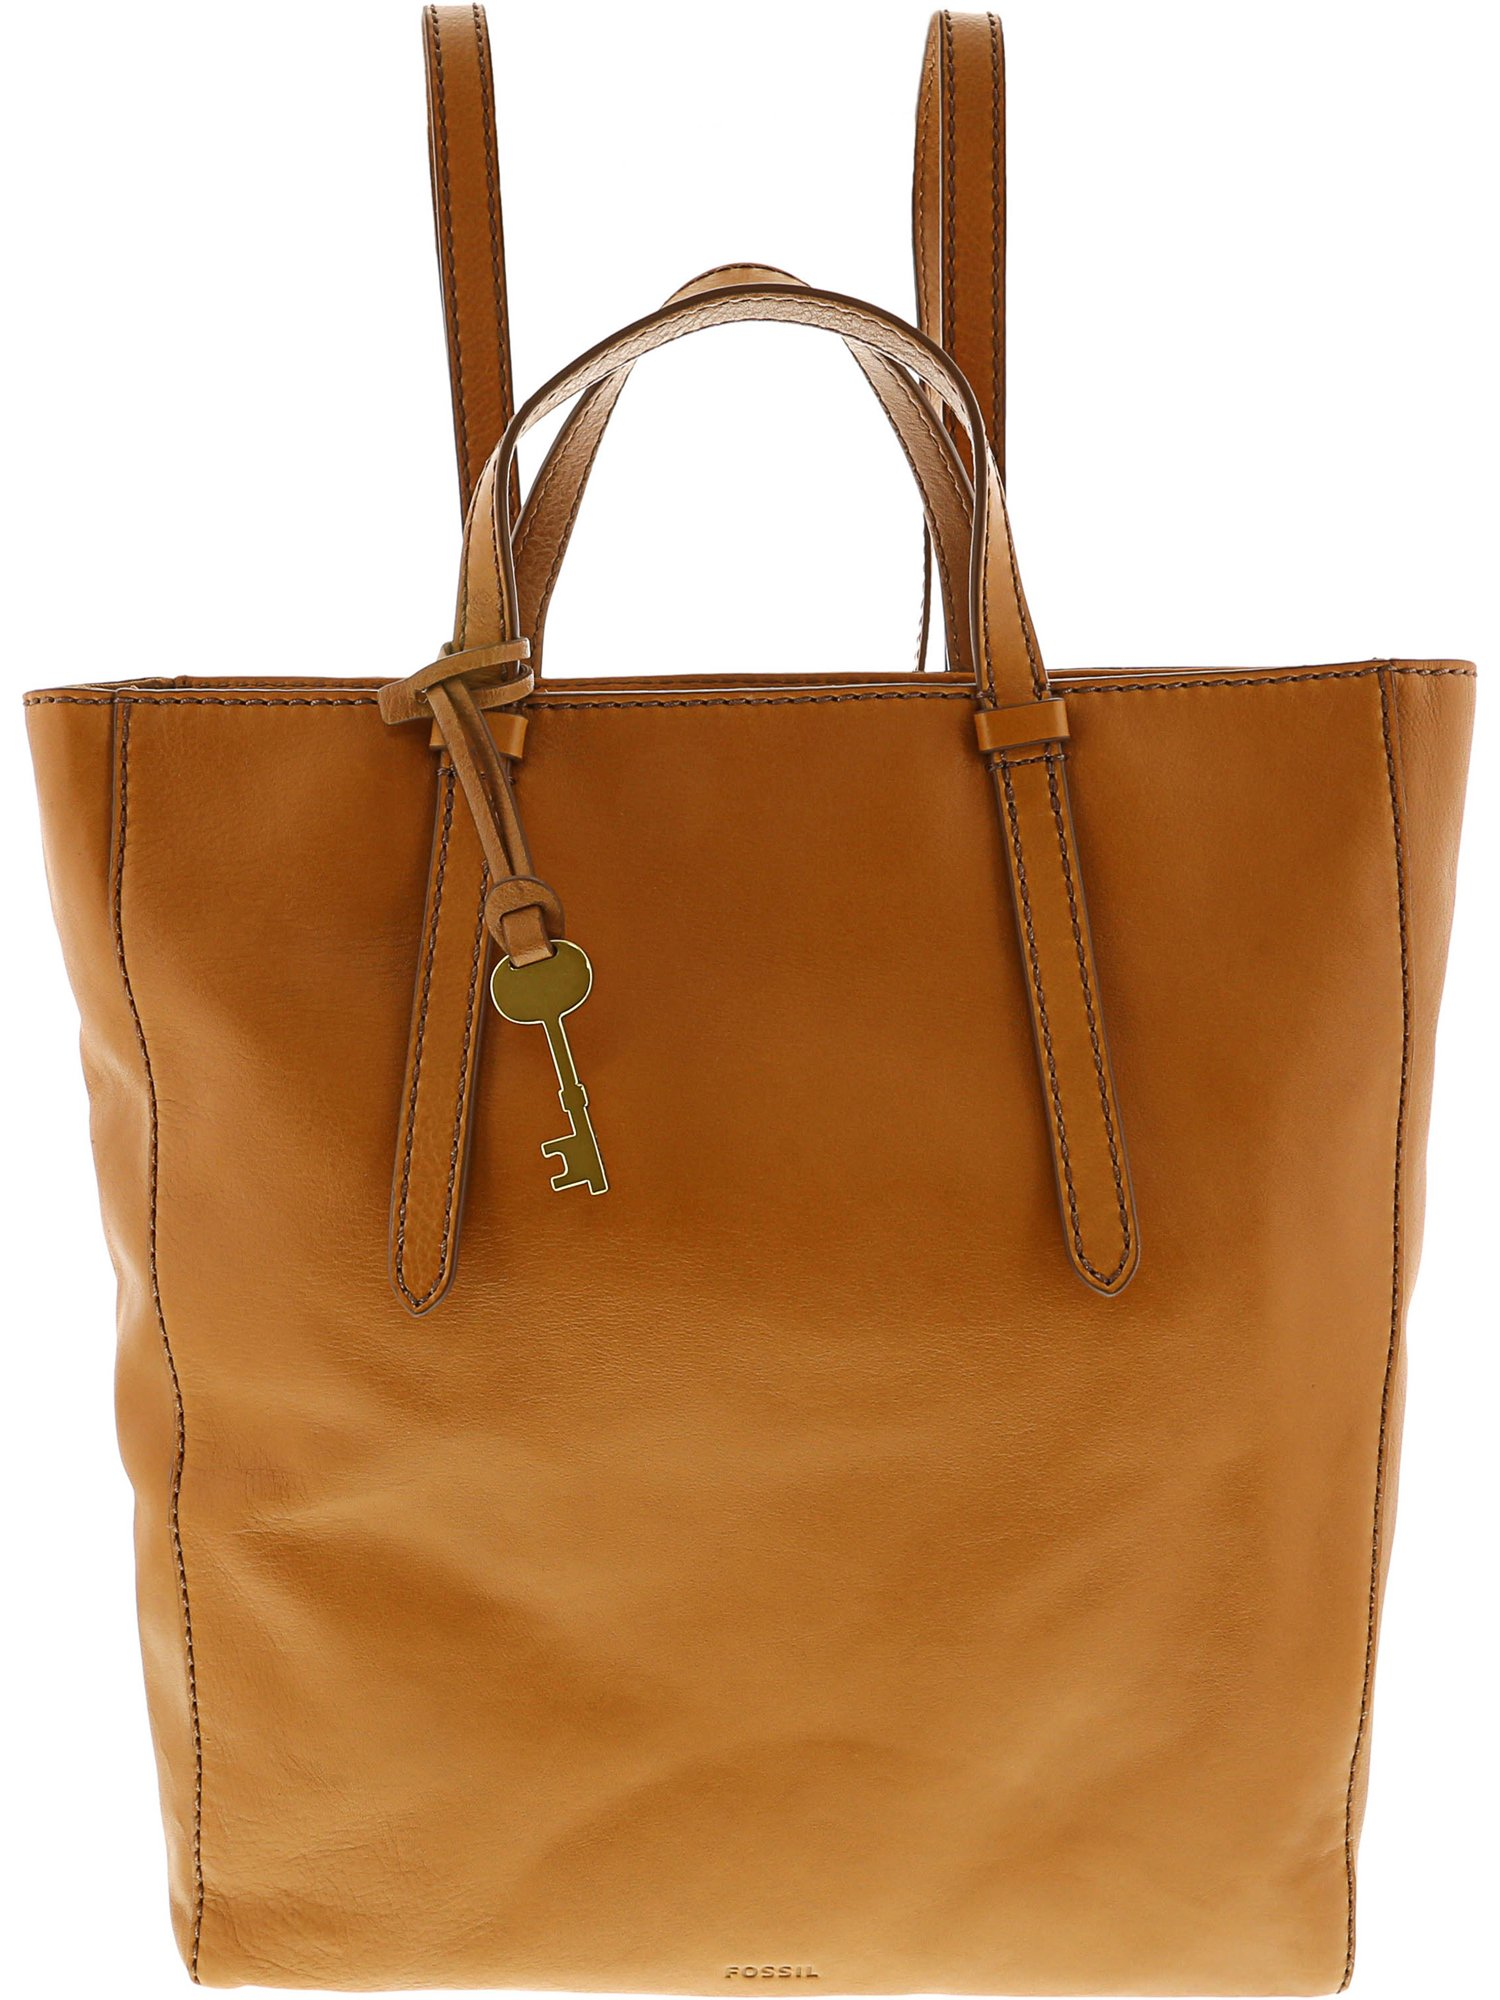 Fossil Women's Camilla Leather Backpack - Medium Brown